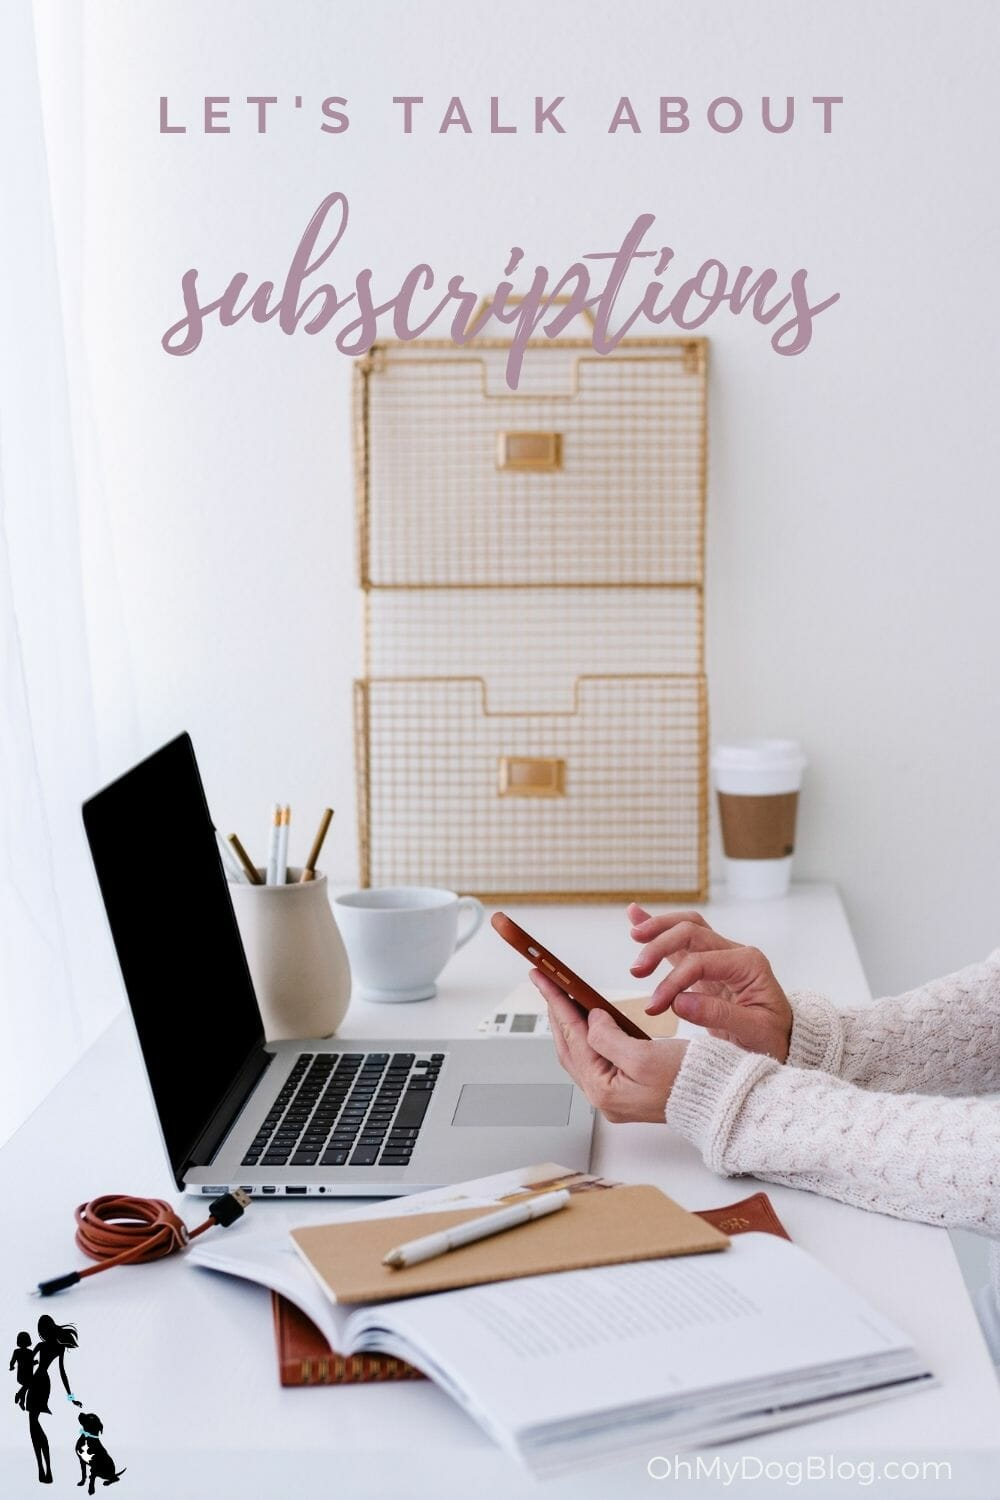 A desktop with a laptop, pen jar, coffee cup, and pile of notebooks. A woman's hands type at a smartphone off to the side. The text overlay reads: Let's talk about subscriptions.